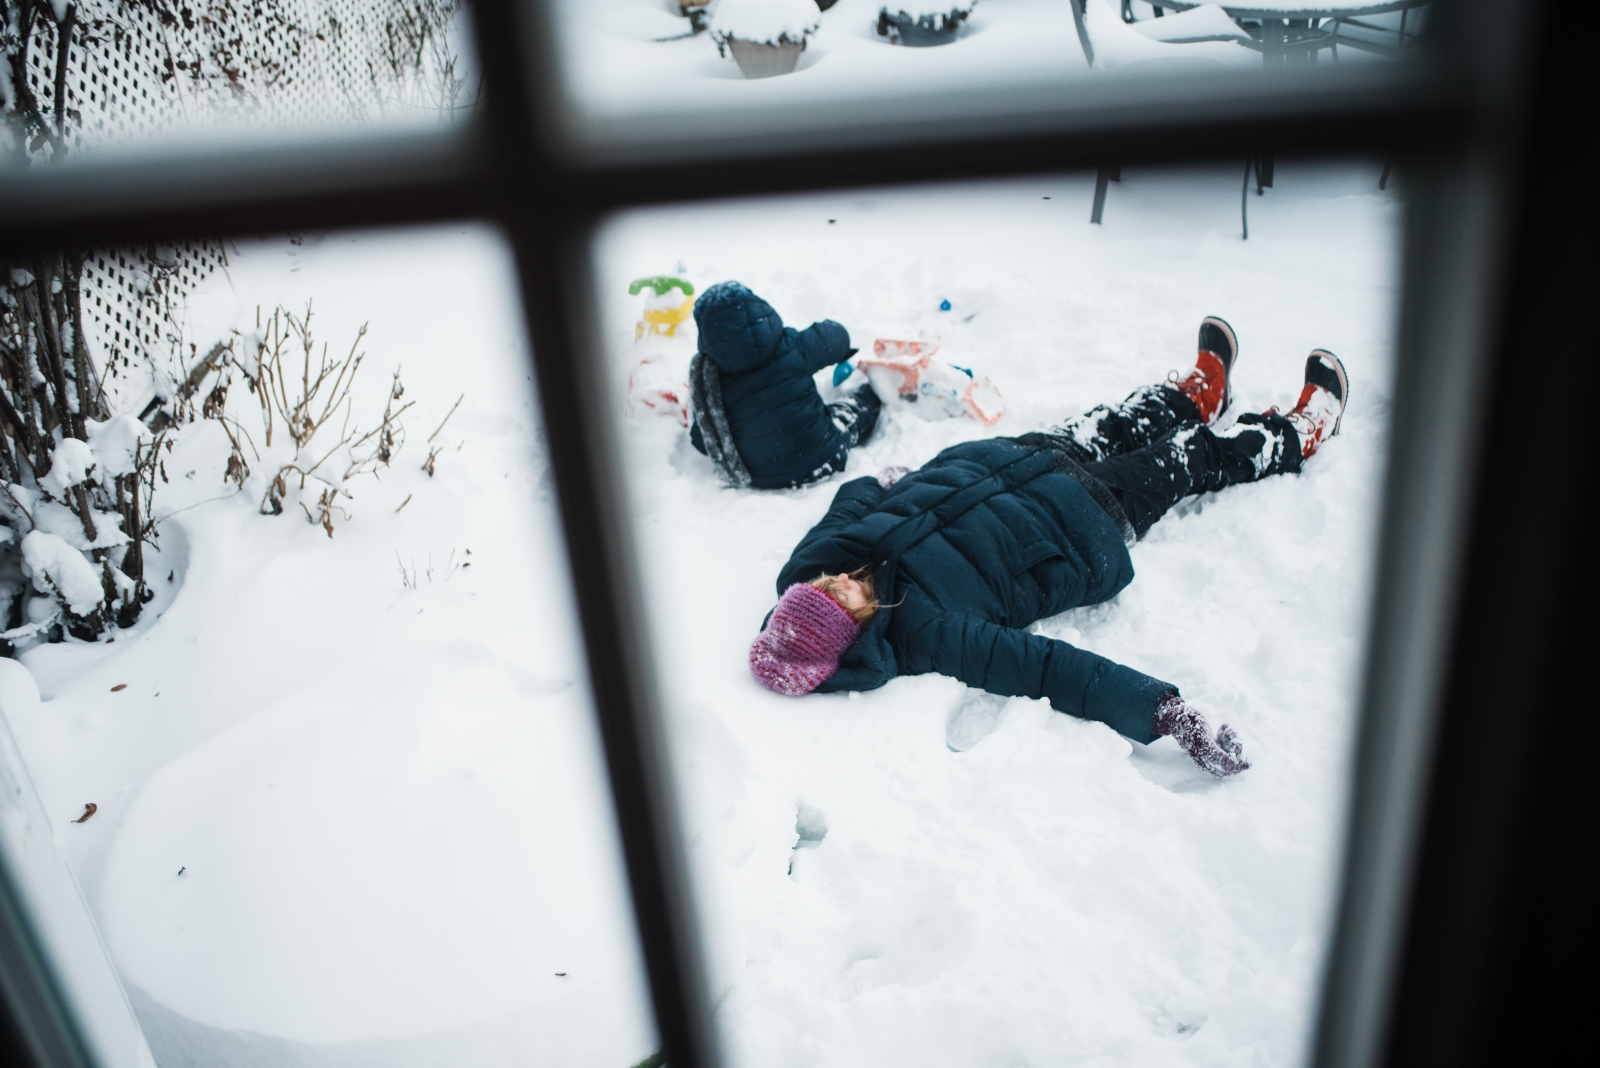 Anna makes snow angels outside in the family garden while our son Jesse plays with his toy trucks.